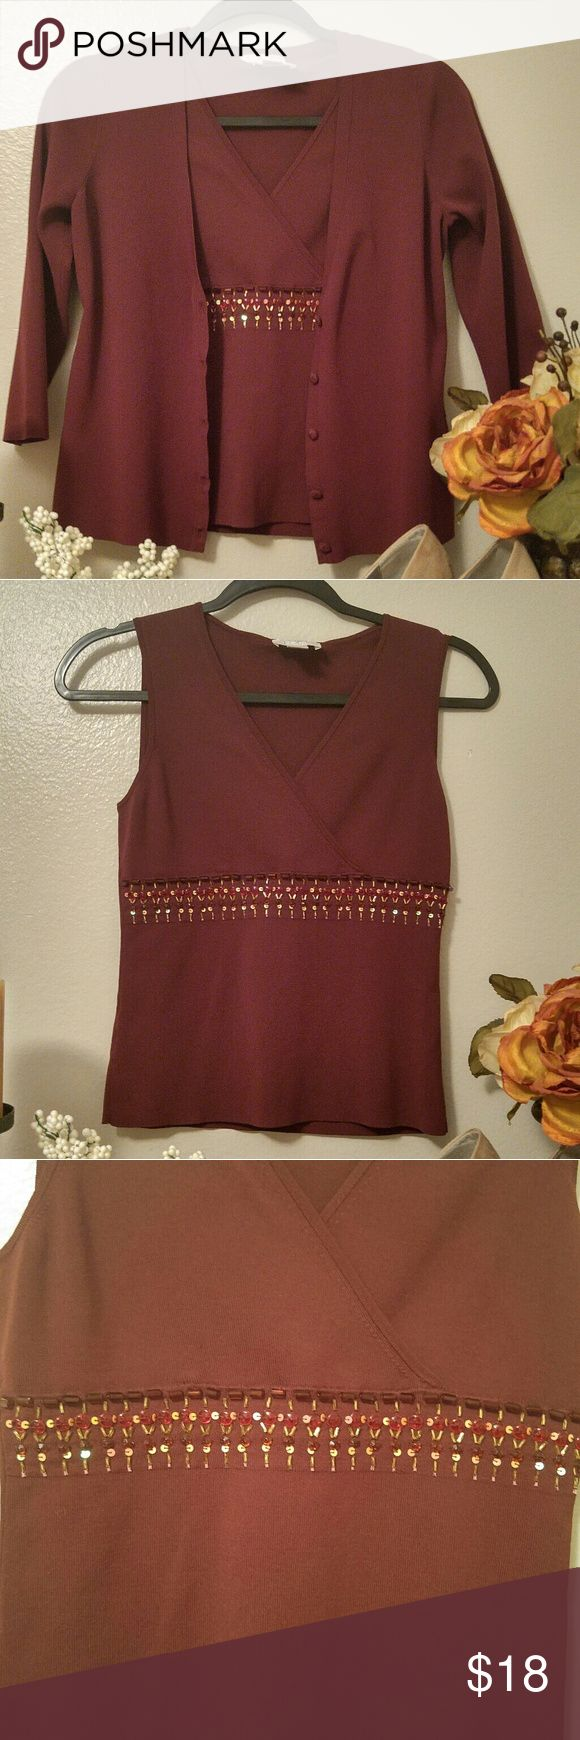 Anne Taylor Loft Burgundy Beaded Sweater Set Very pretty Anne Taylor Loft burgundy sweater set.  Sleeveless crossover v-neck sweater with beaded accents at bustline, size is MP. Matching 3/4 sleeve over sweater, size is M. Excellent condition, only worn a few times. Ann Taylor Tops